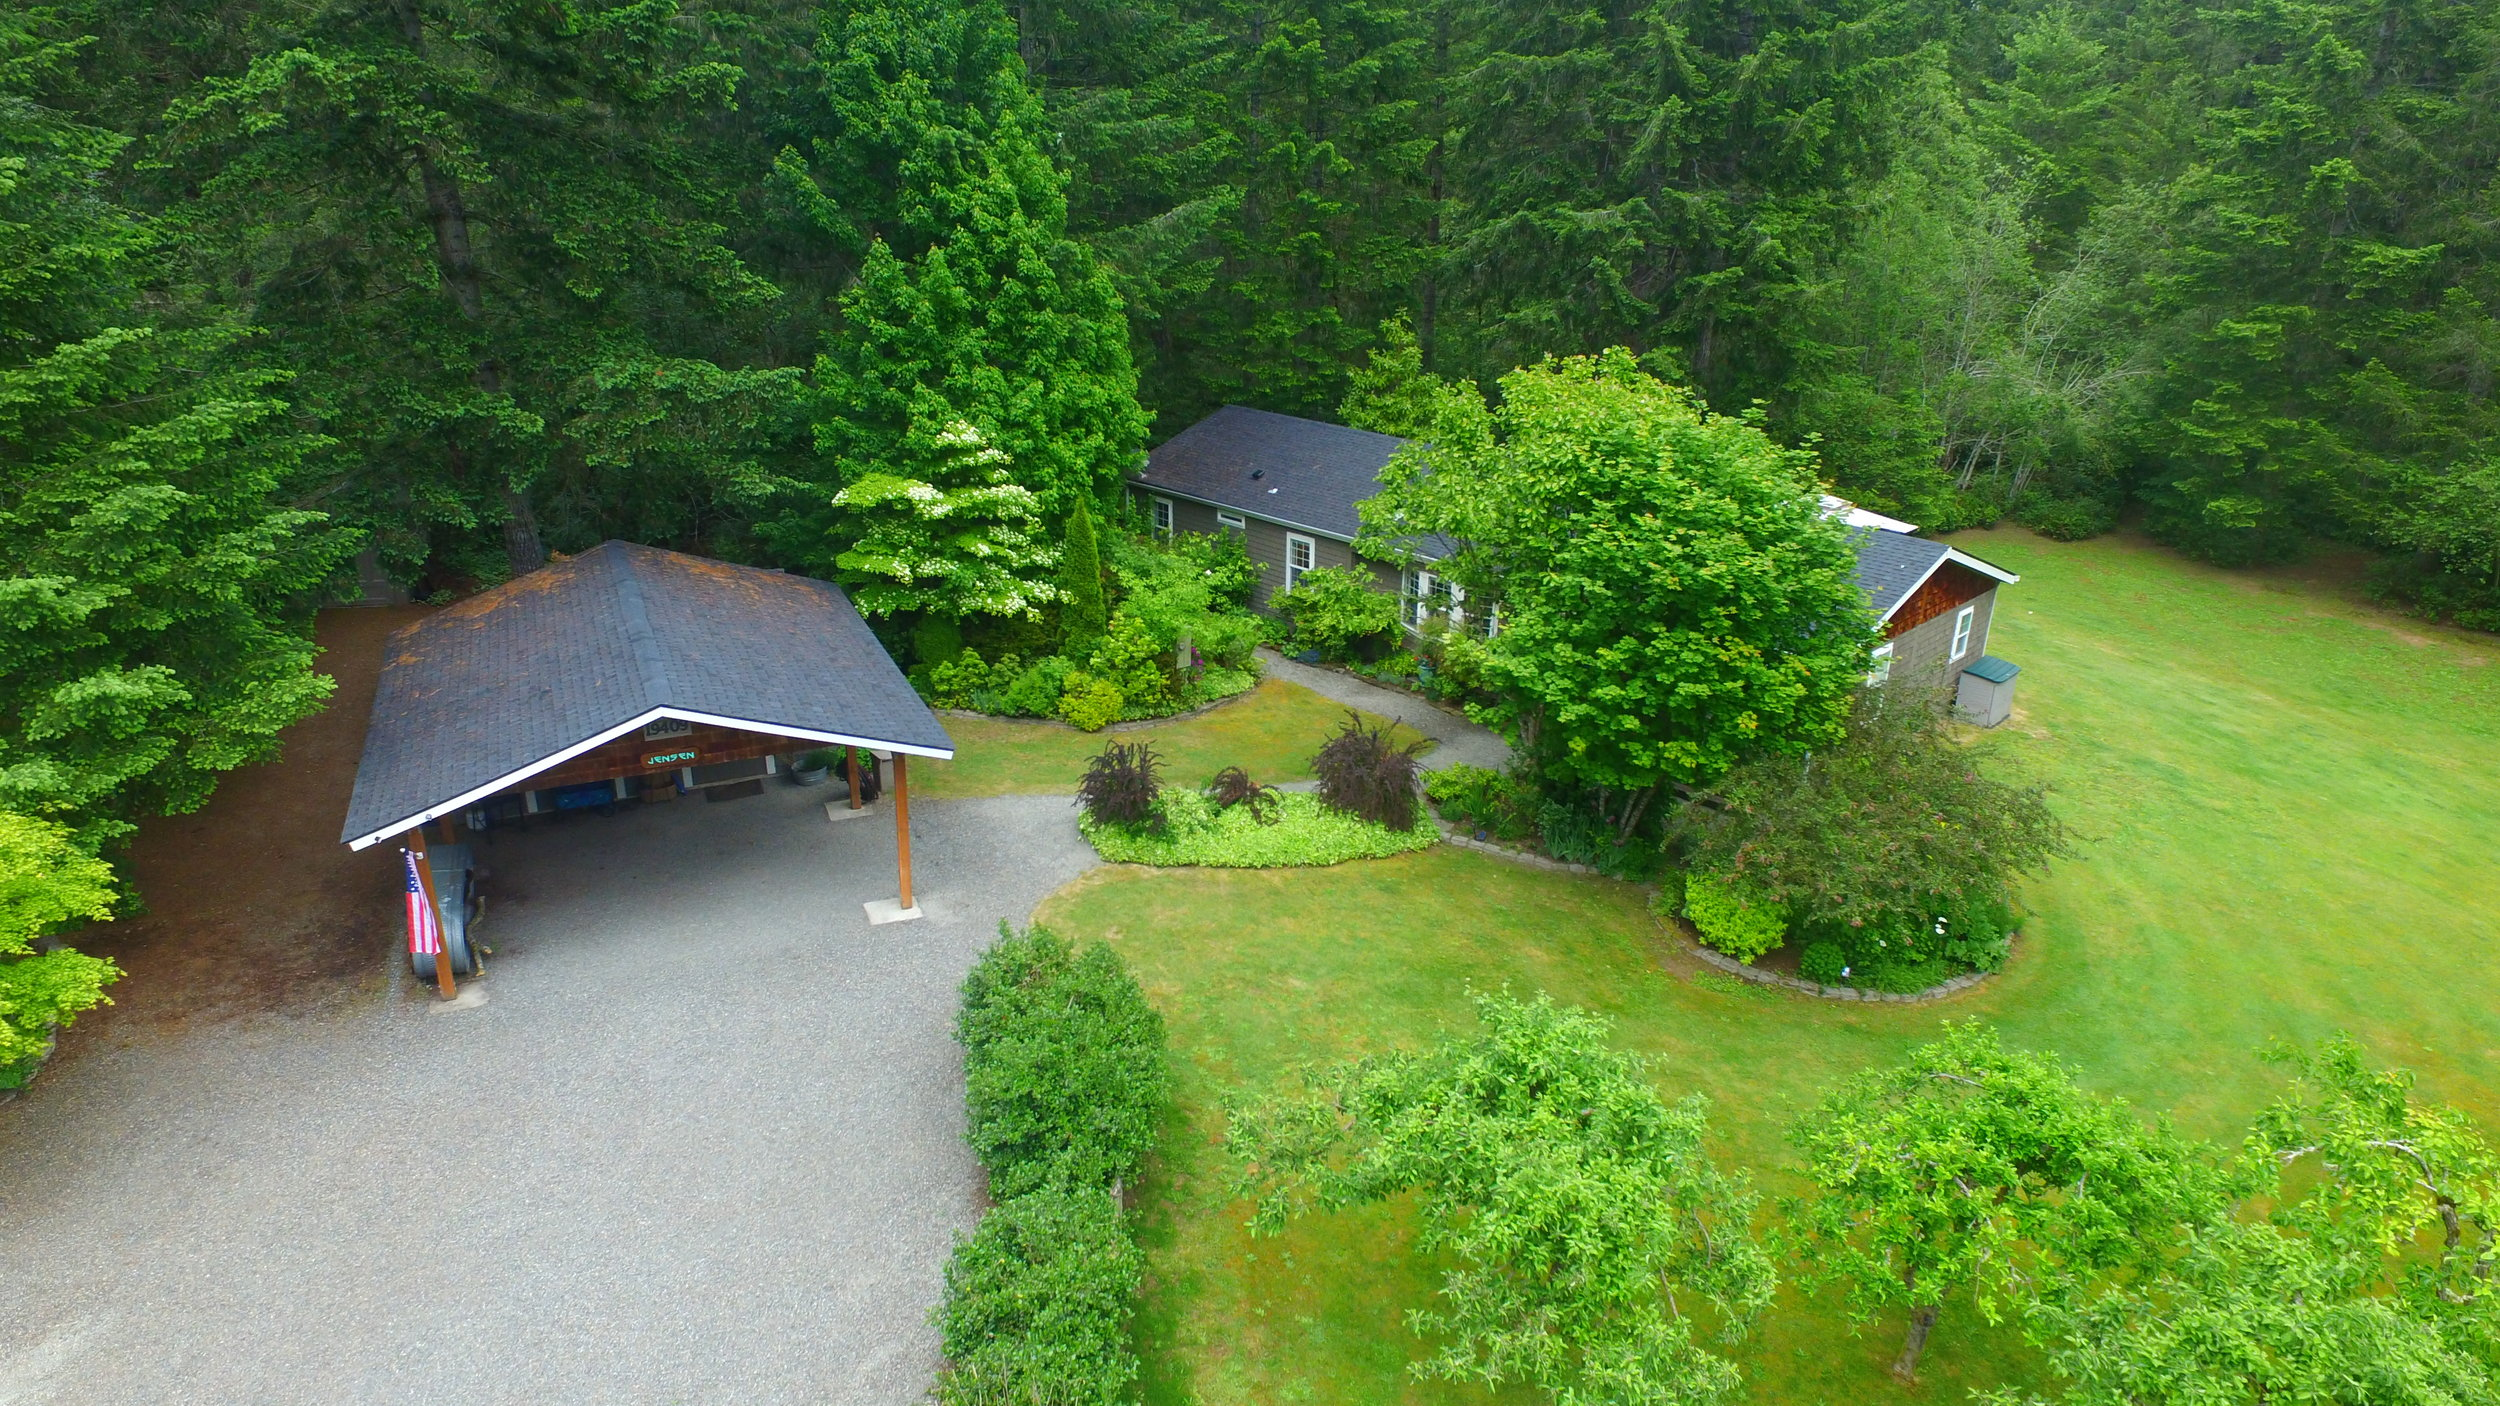 An overhead view of part of the gravel drive as well as the garden beds leading to the house. The lawn curves around the side, and extends all the way around the back of the home to the edge of the trees.